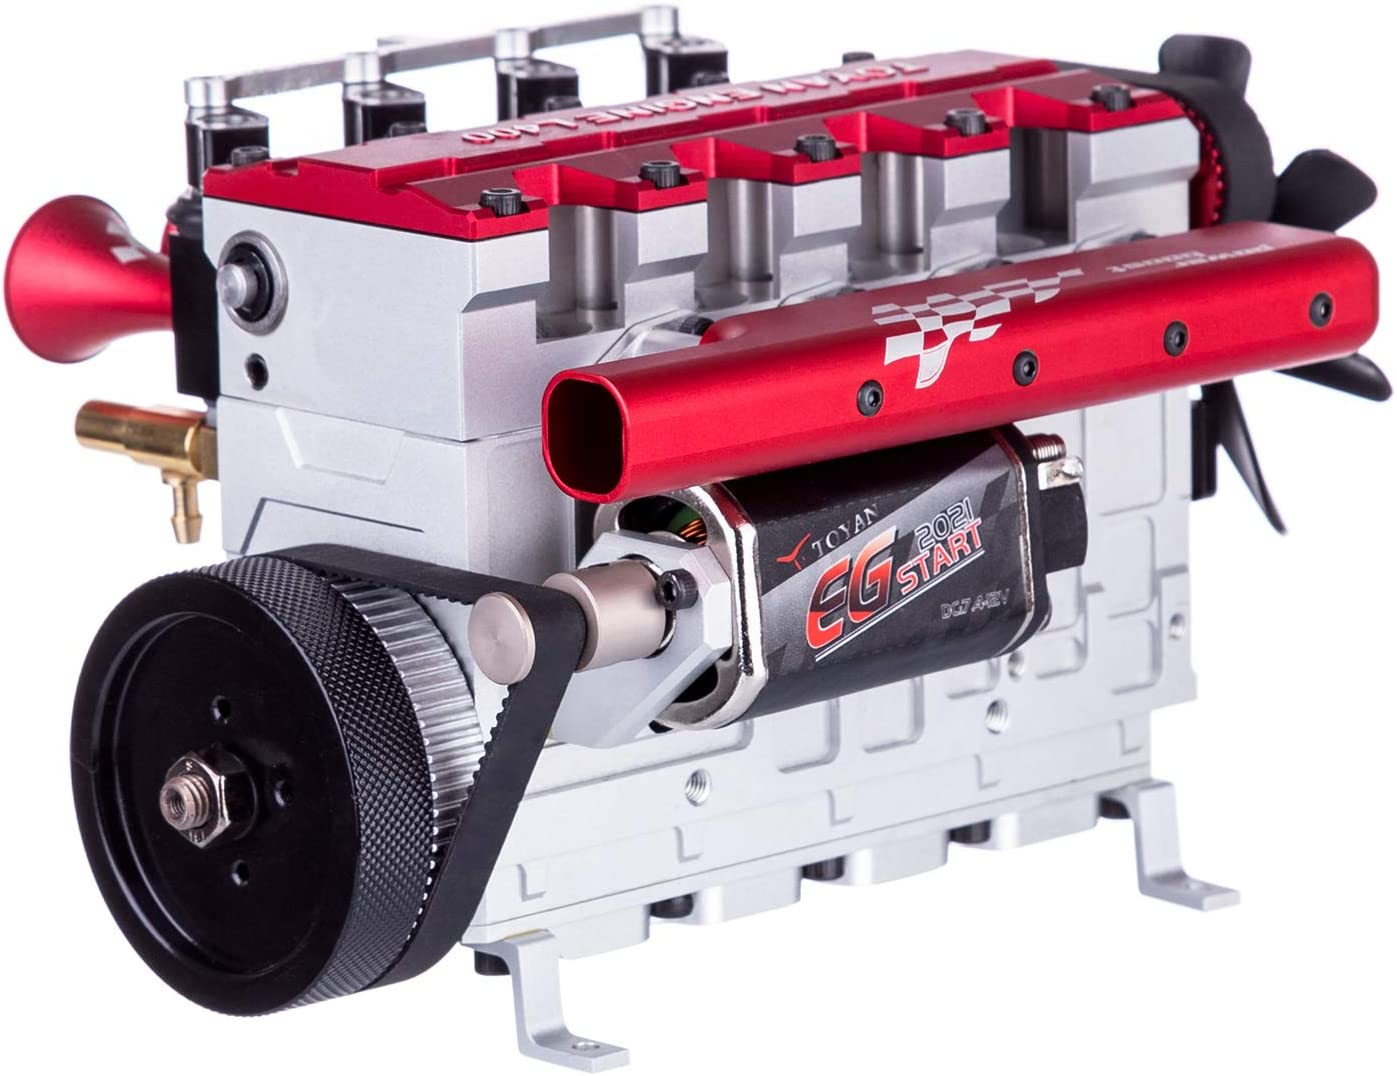 HMANE 14cc Inline Four-Cylinder Engine TO Kits Gifts Adults Model for Max 67% OFF